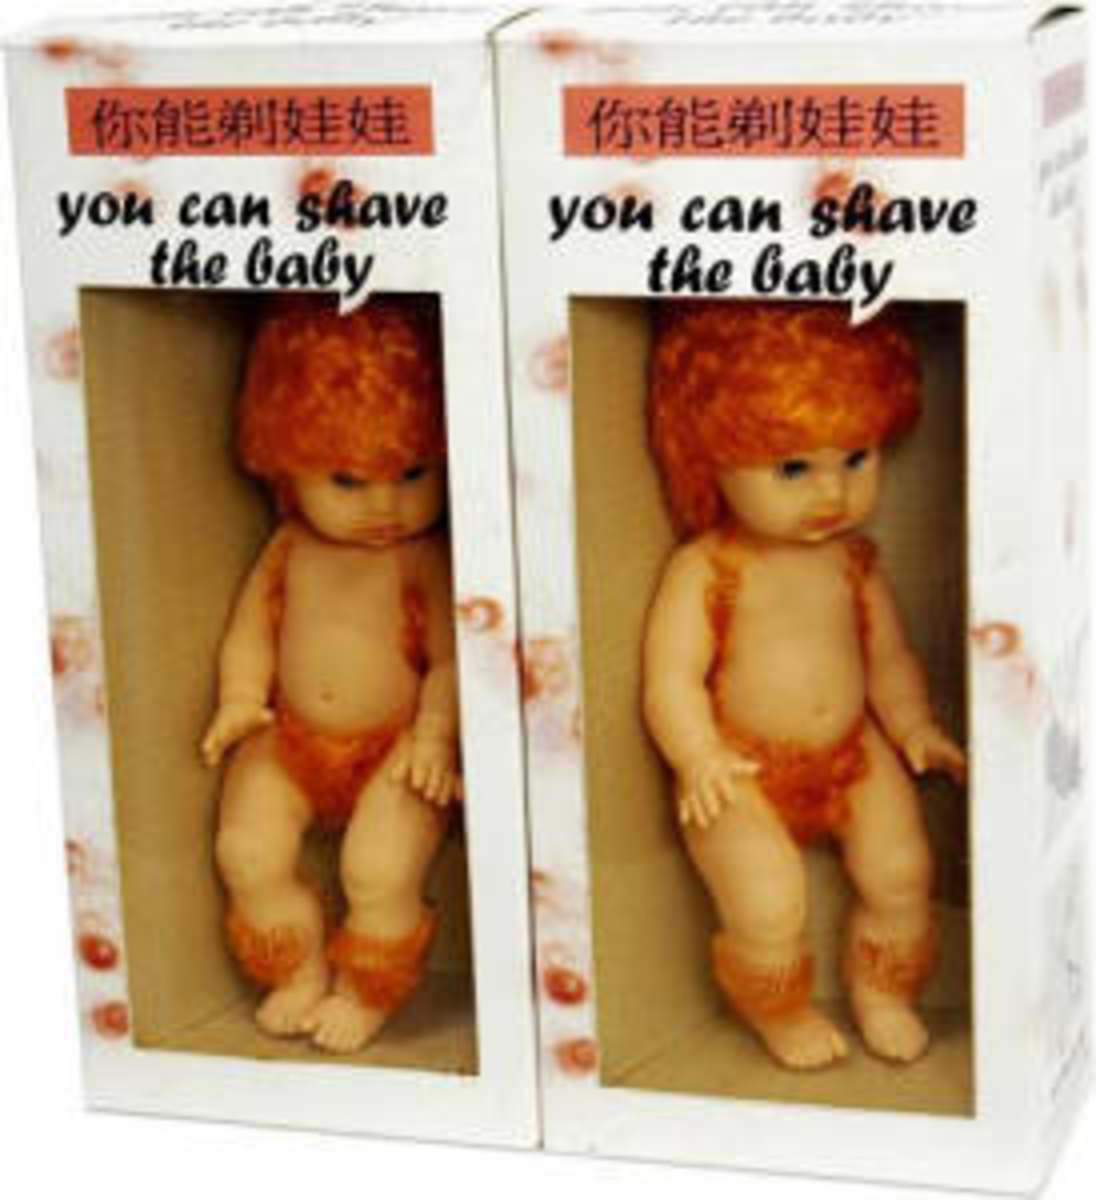 "Everything about this ""toy"" is bizarre. Why would anyone want to shave a baby? Why would anyone want their child to shave a baby as a form of playtime? Why would a baby have so much hair in the first place? And why did they choose for the bay to have ginger colored hair?"